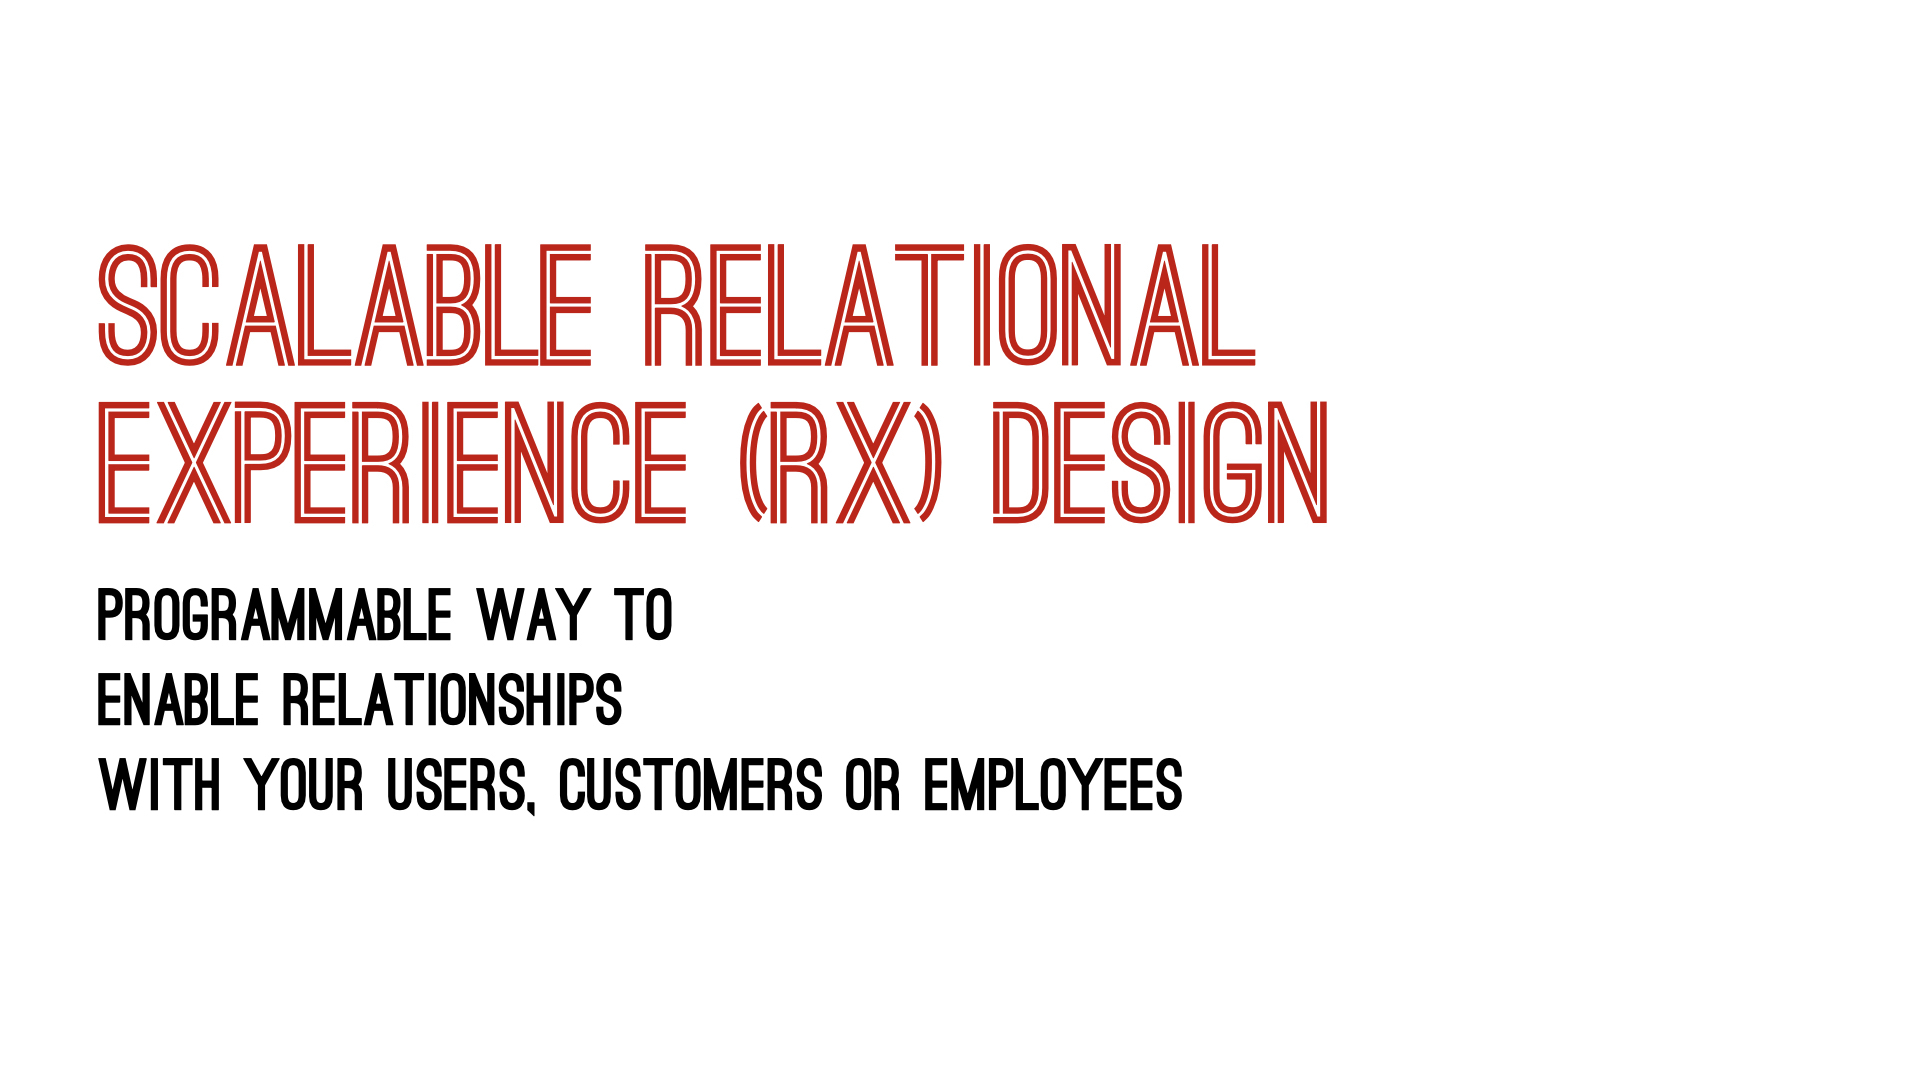 Scalable Relational Experience (RX) Design [with video]